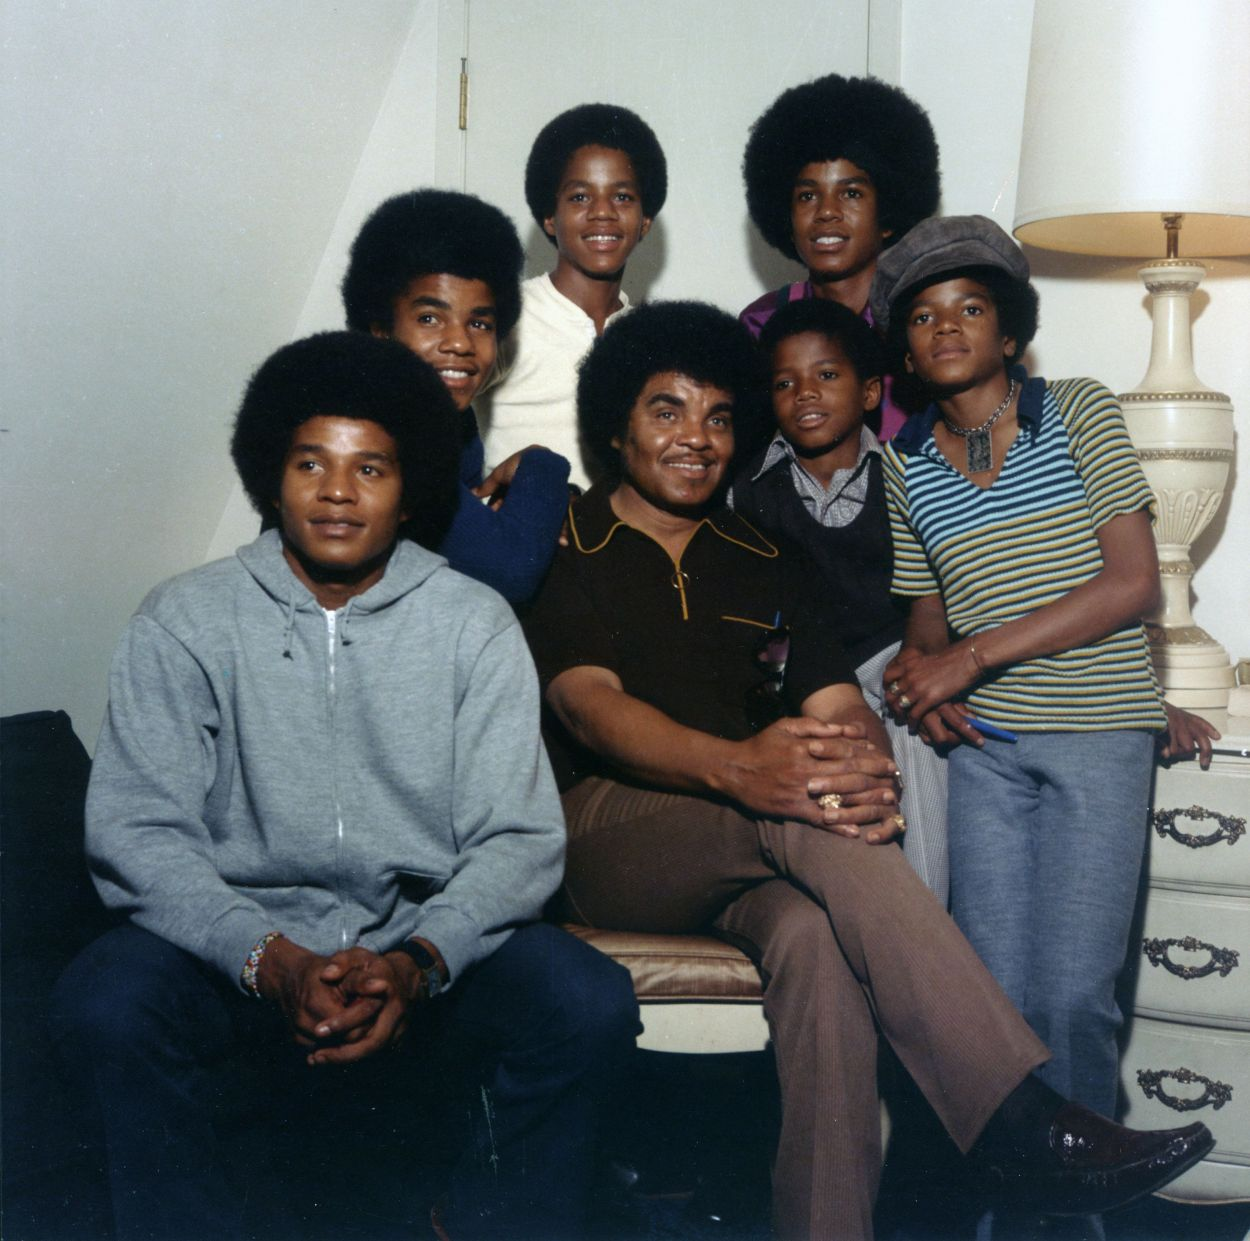 Clockwise from bottom left: Jackie, Tito, Marlon, Jermaine, Michael, Randy and Joe Jackson pictured soon after landing a